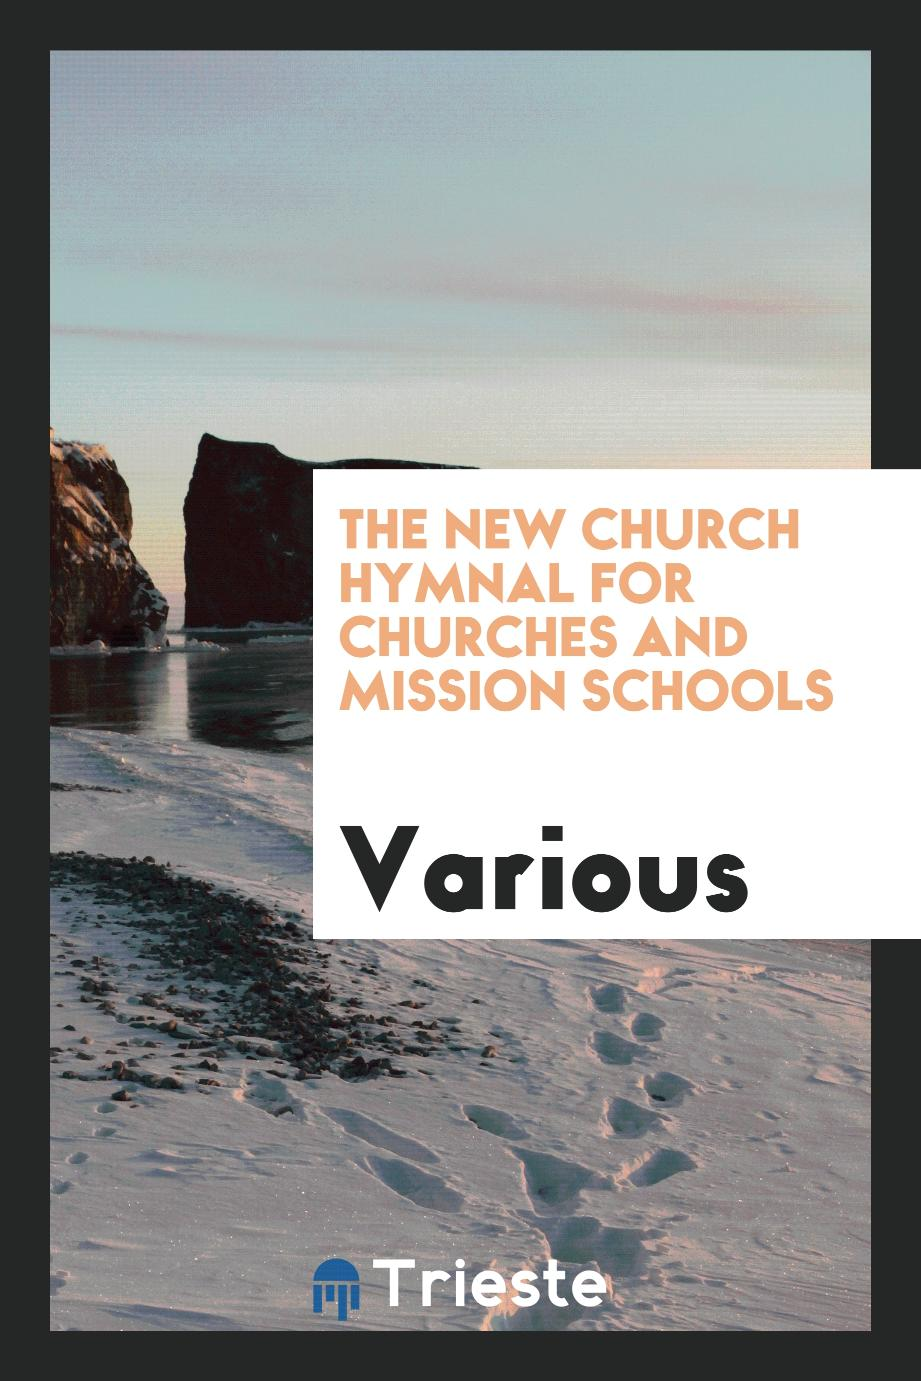 The New Church Hymnal for Churches and Mission Schools